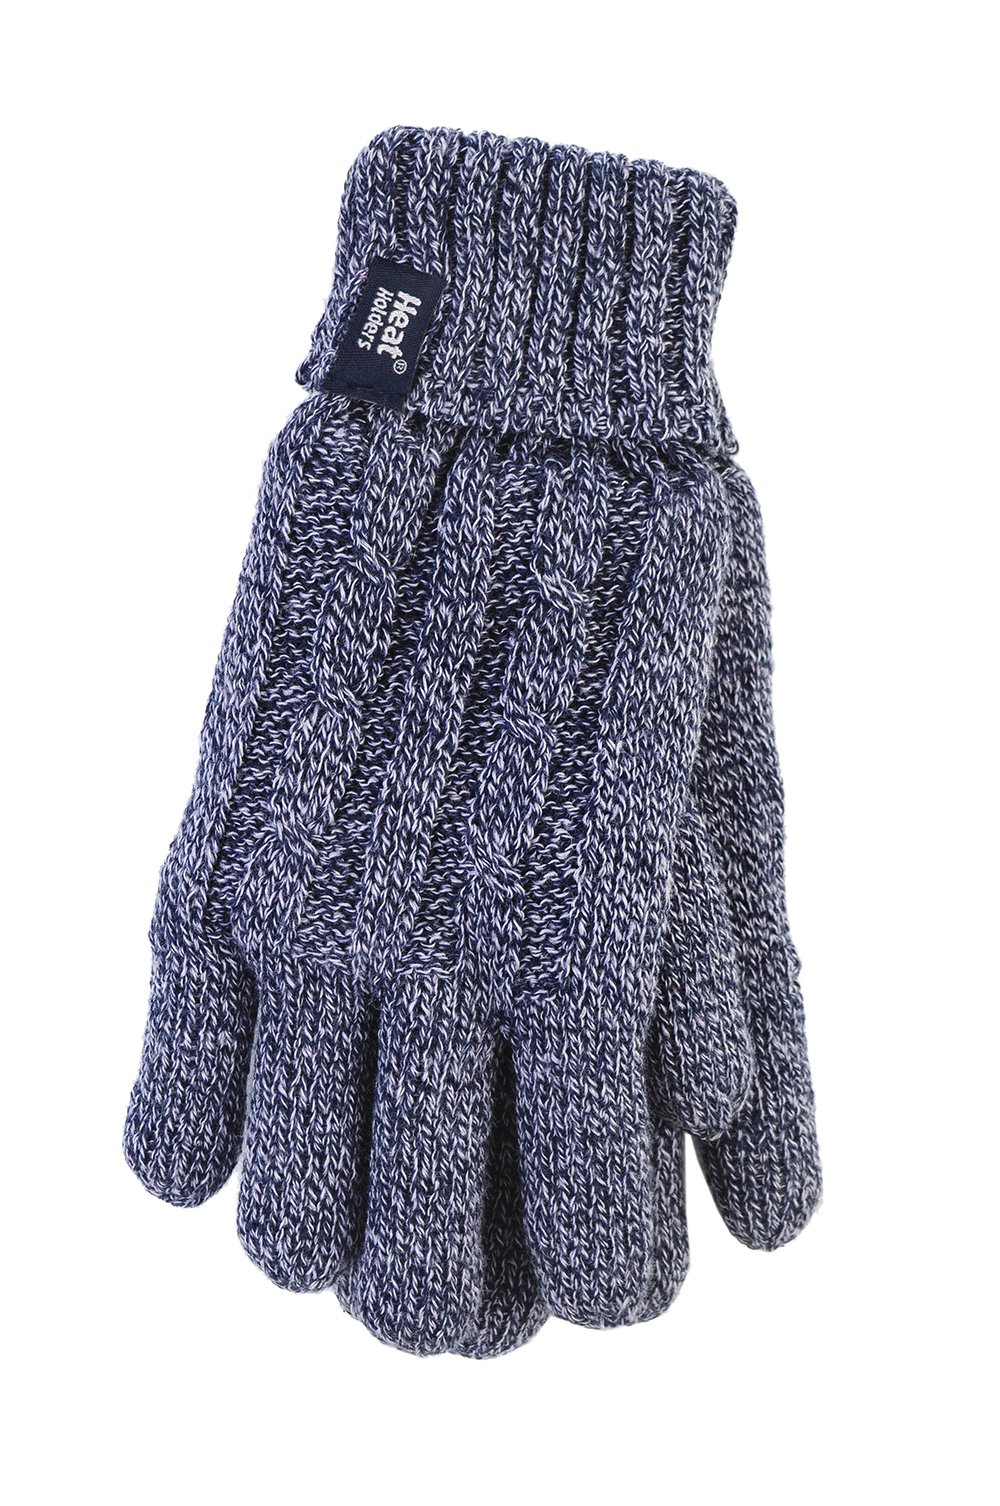 Heat Holders - Women's Thermal Heat Weaver Cable Knit 2.3 Tog Gloves - S/m (Small/Medium, Blue)